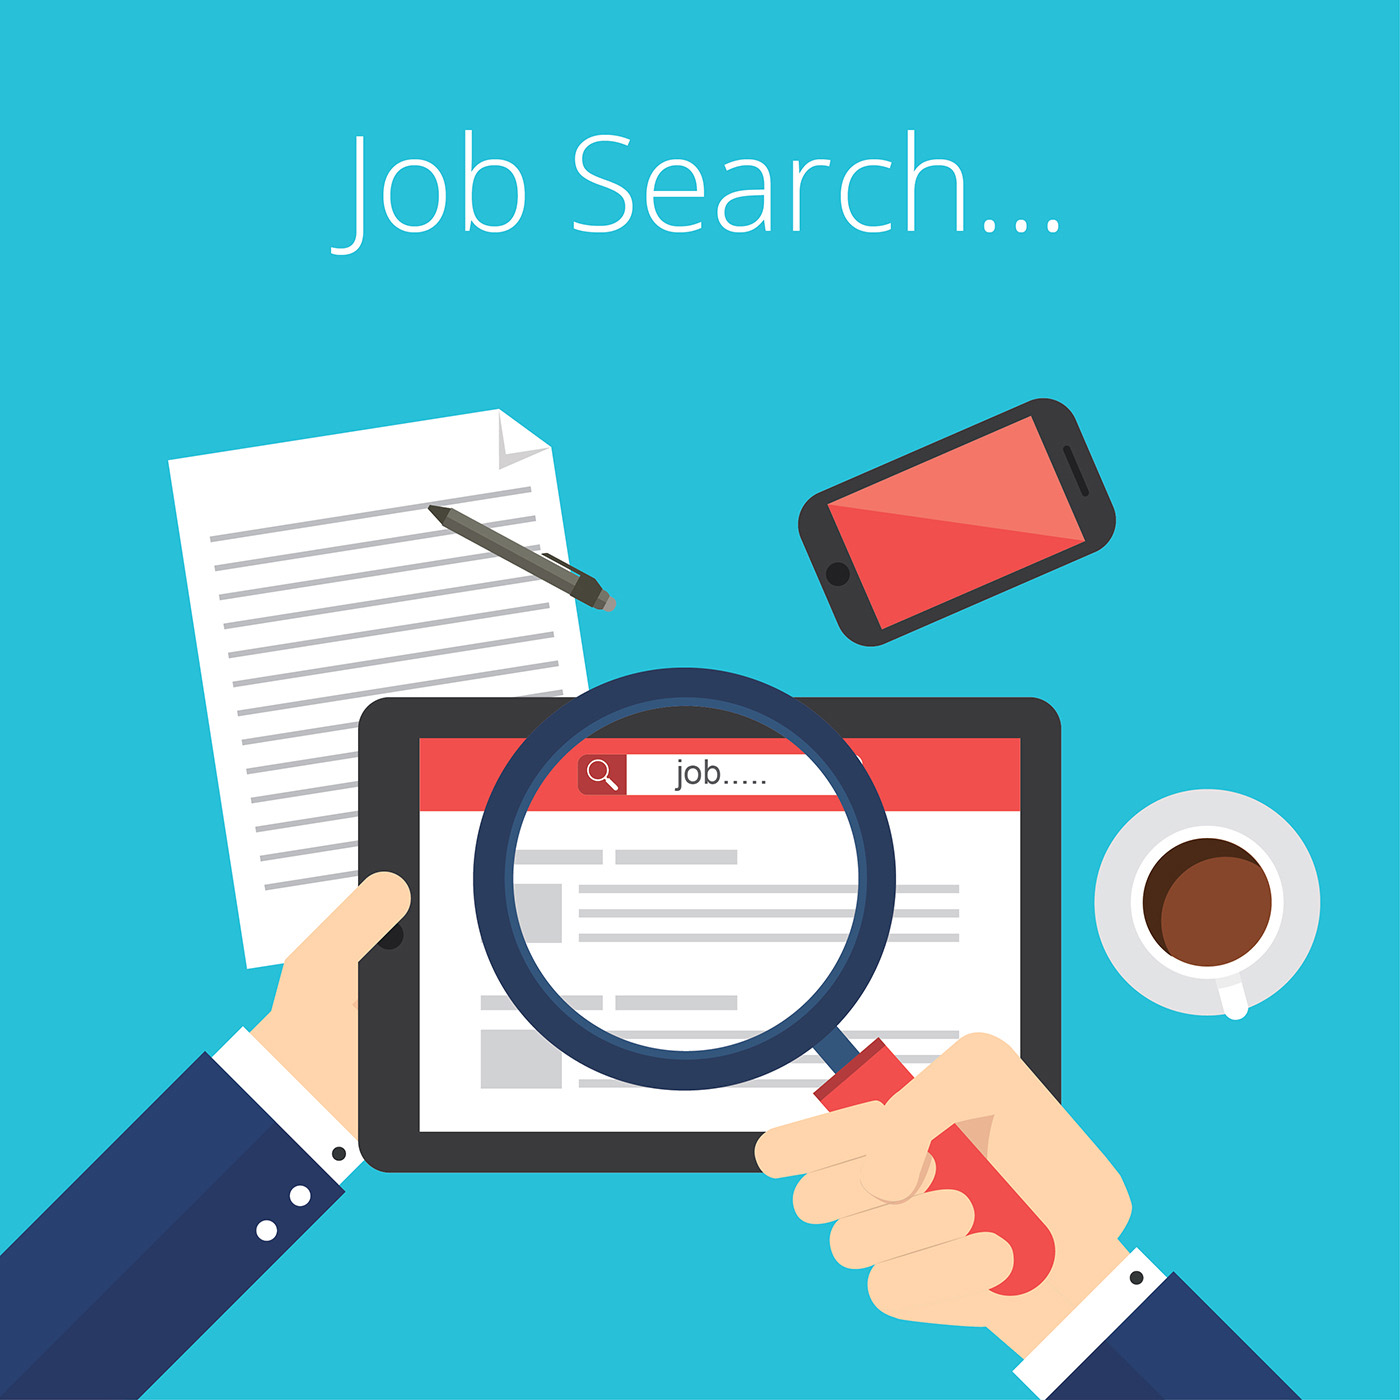 job search free vector